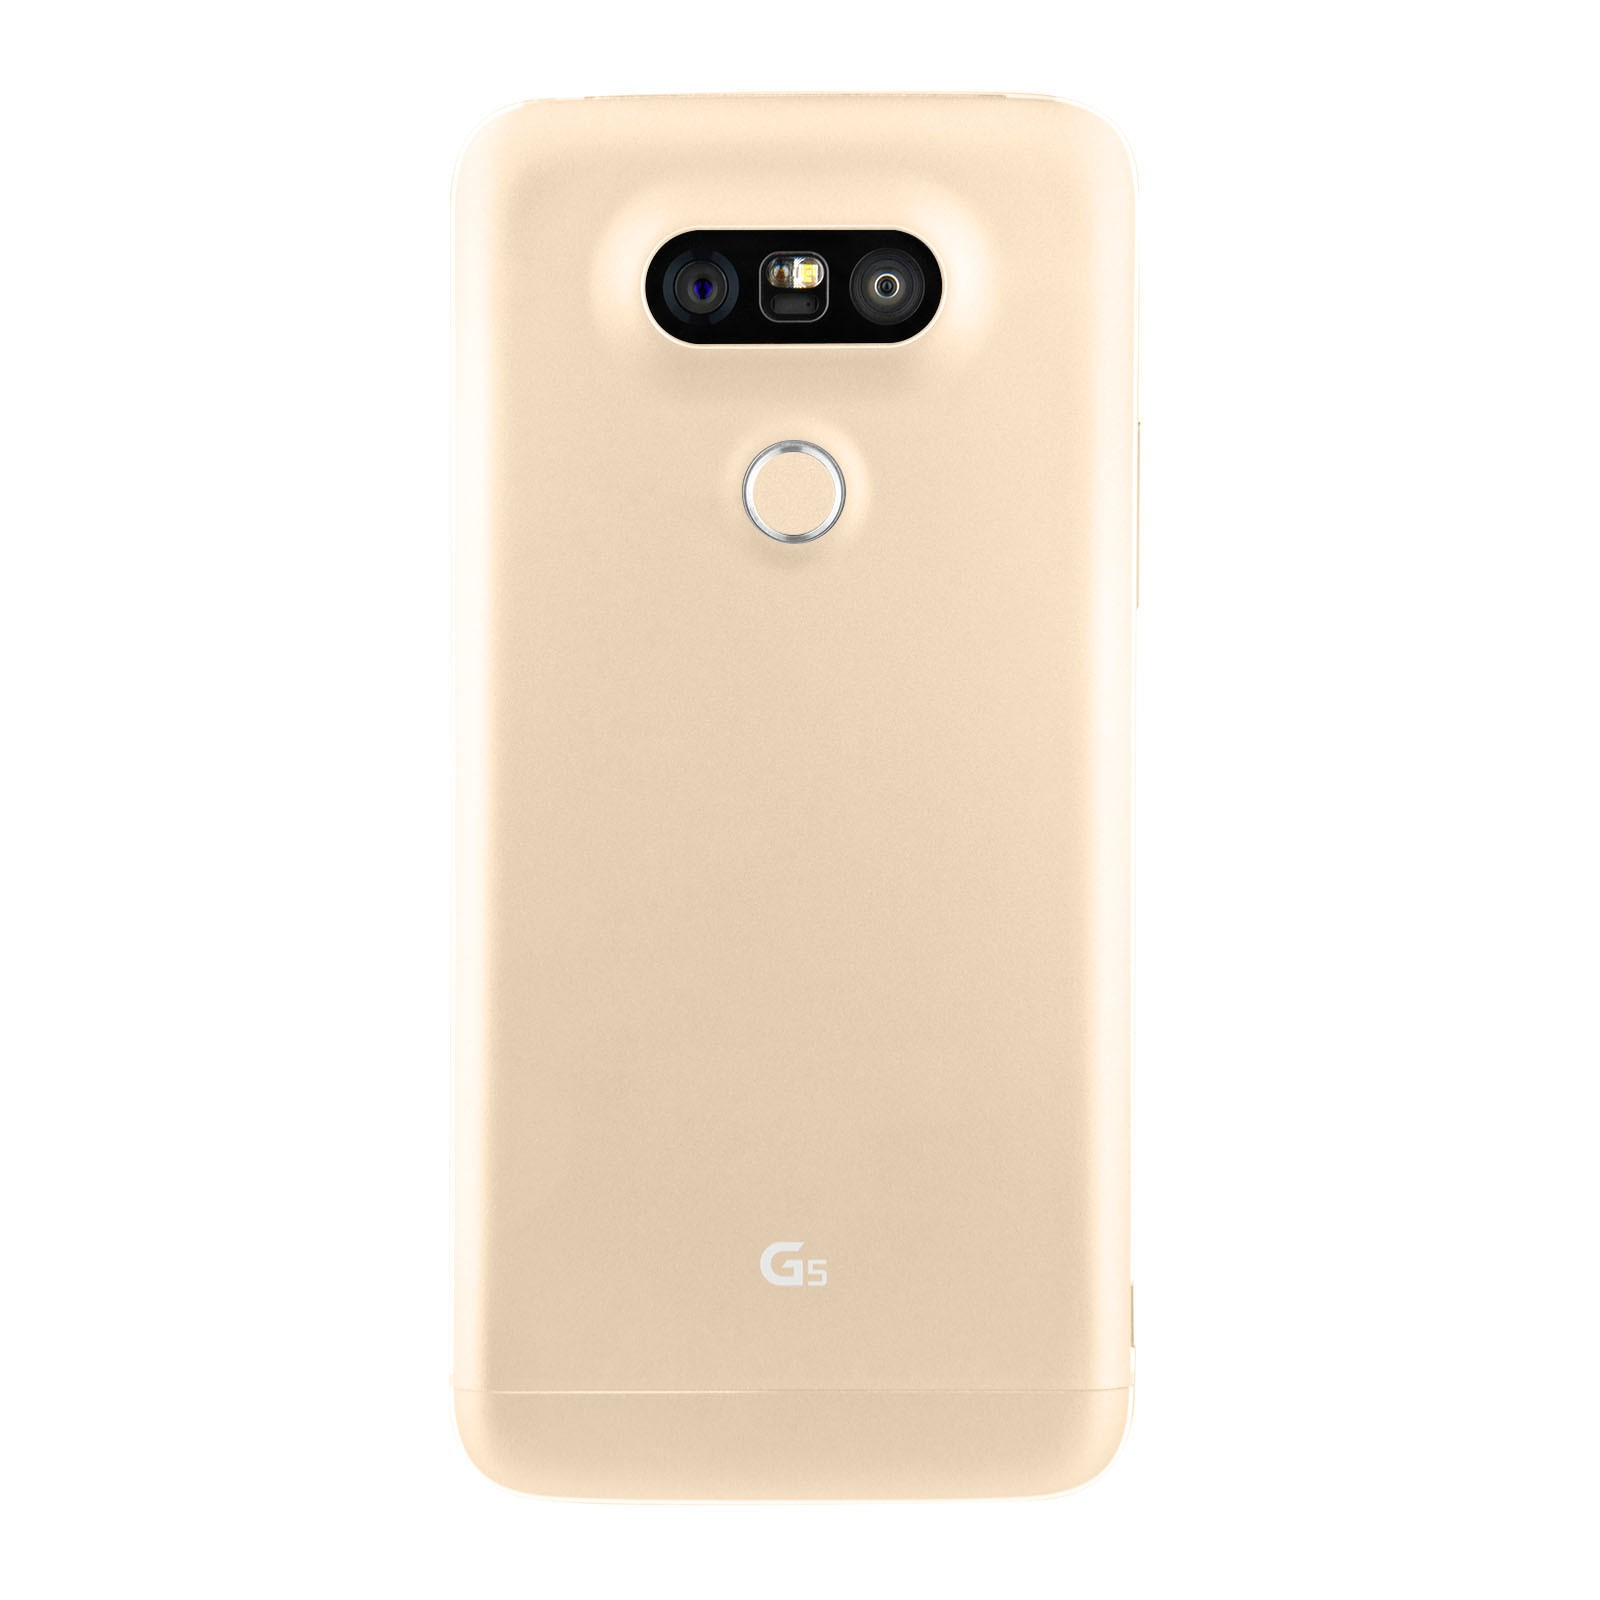 LG G5 32GB 4G LTE Sprint Unlocked Android Smartphone